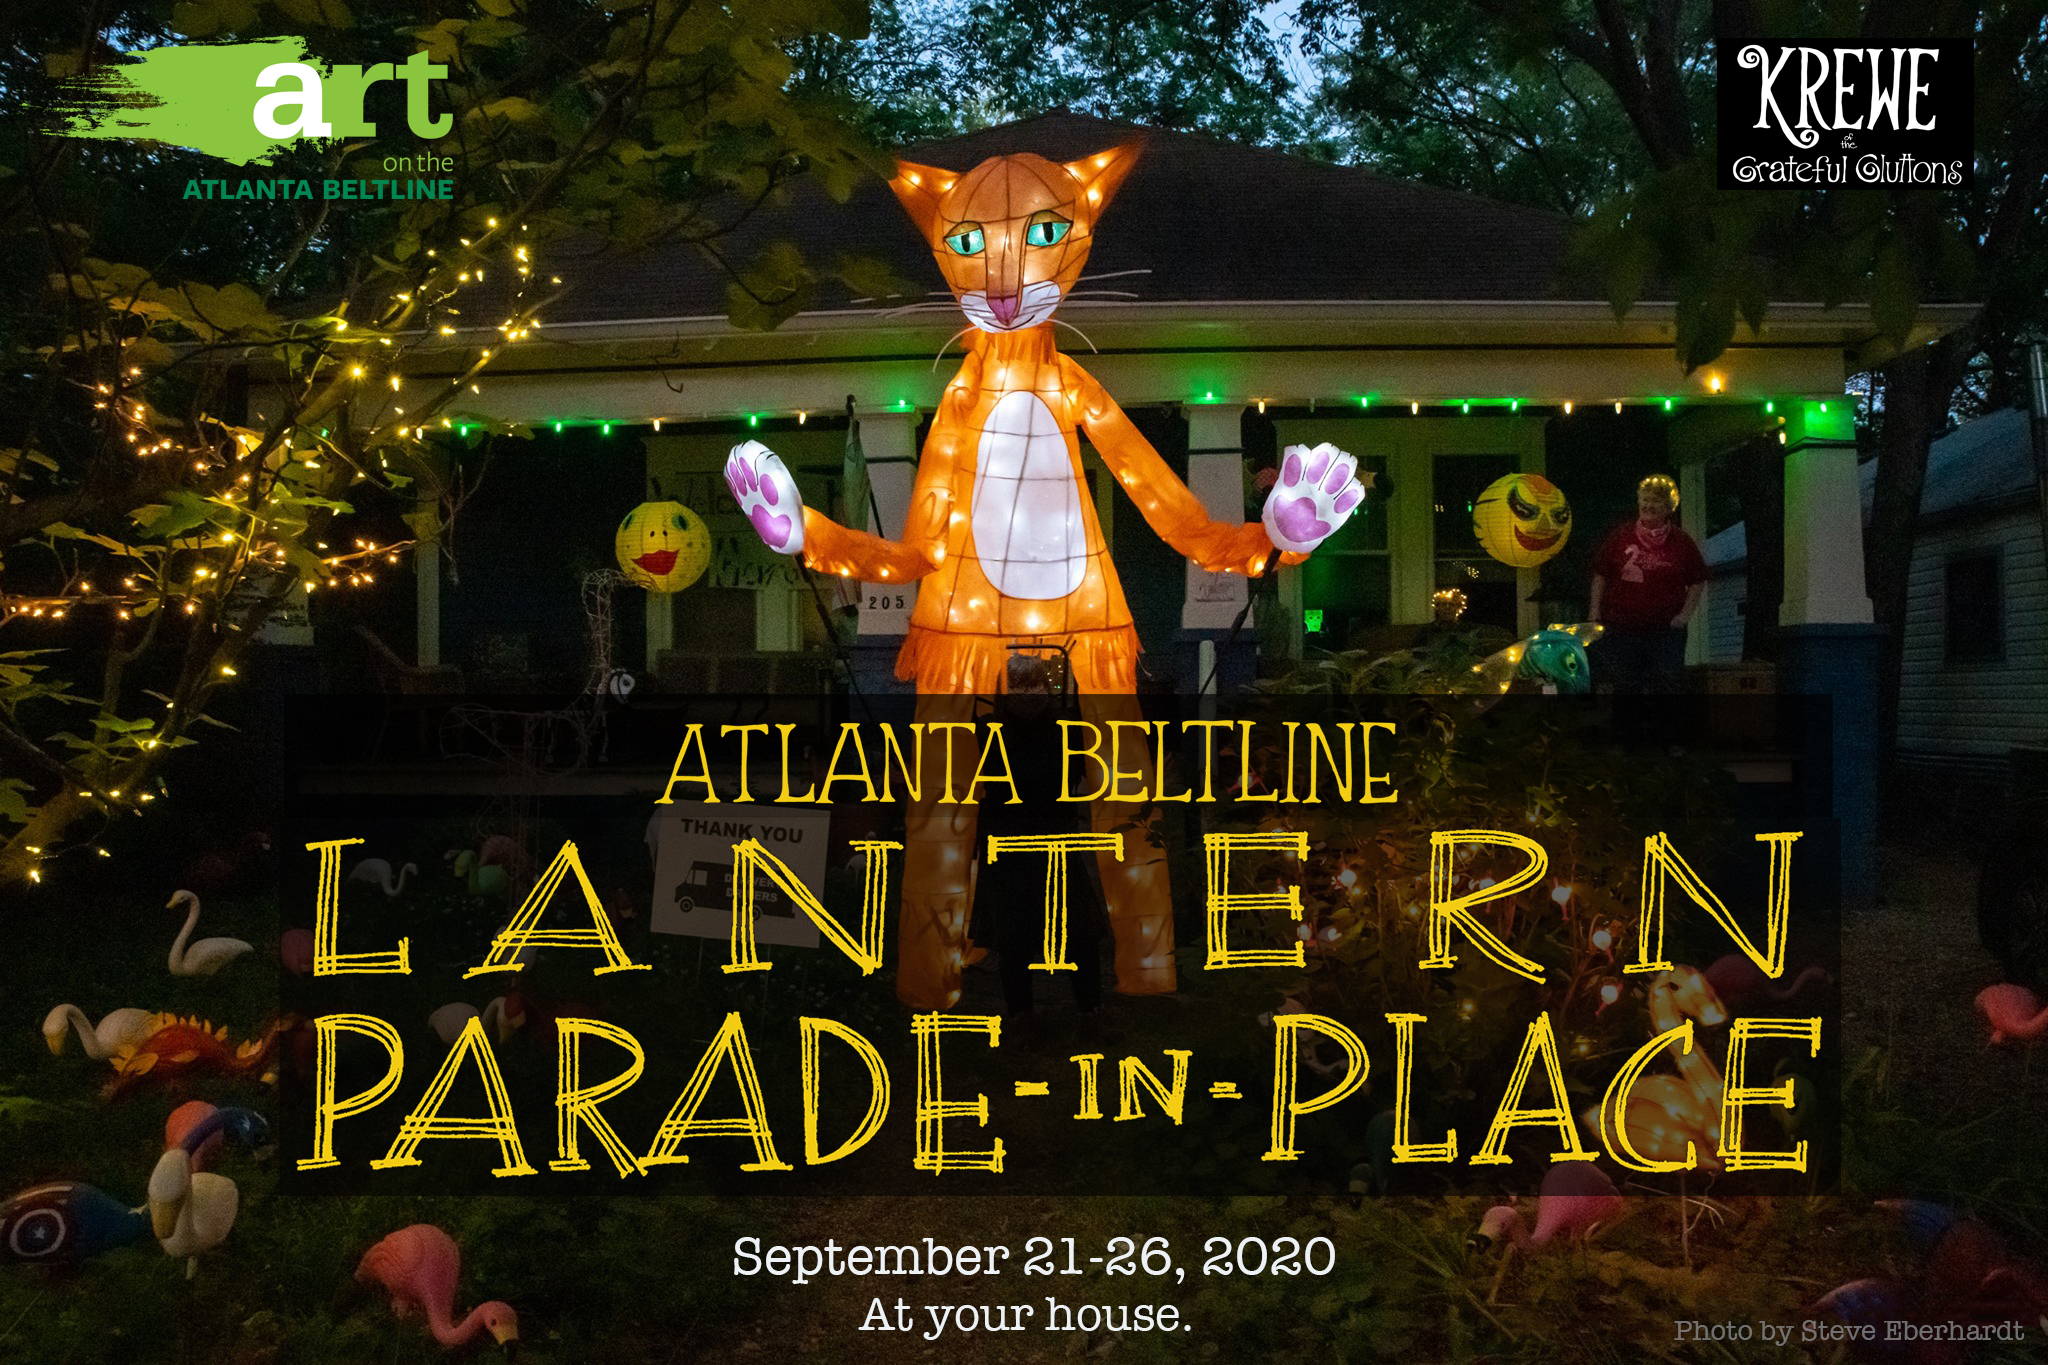 Atlanta BeltLine Lantern Parade-in-Place 2020 event graphic